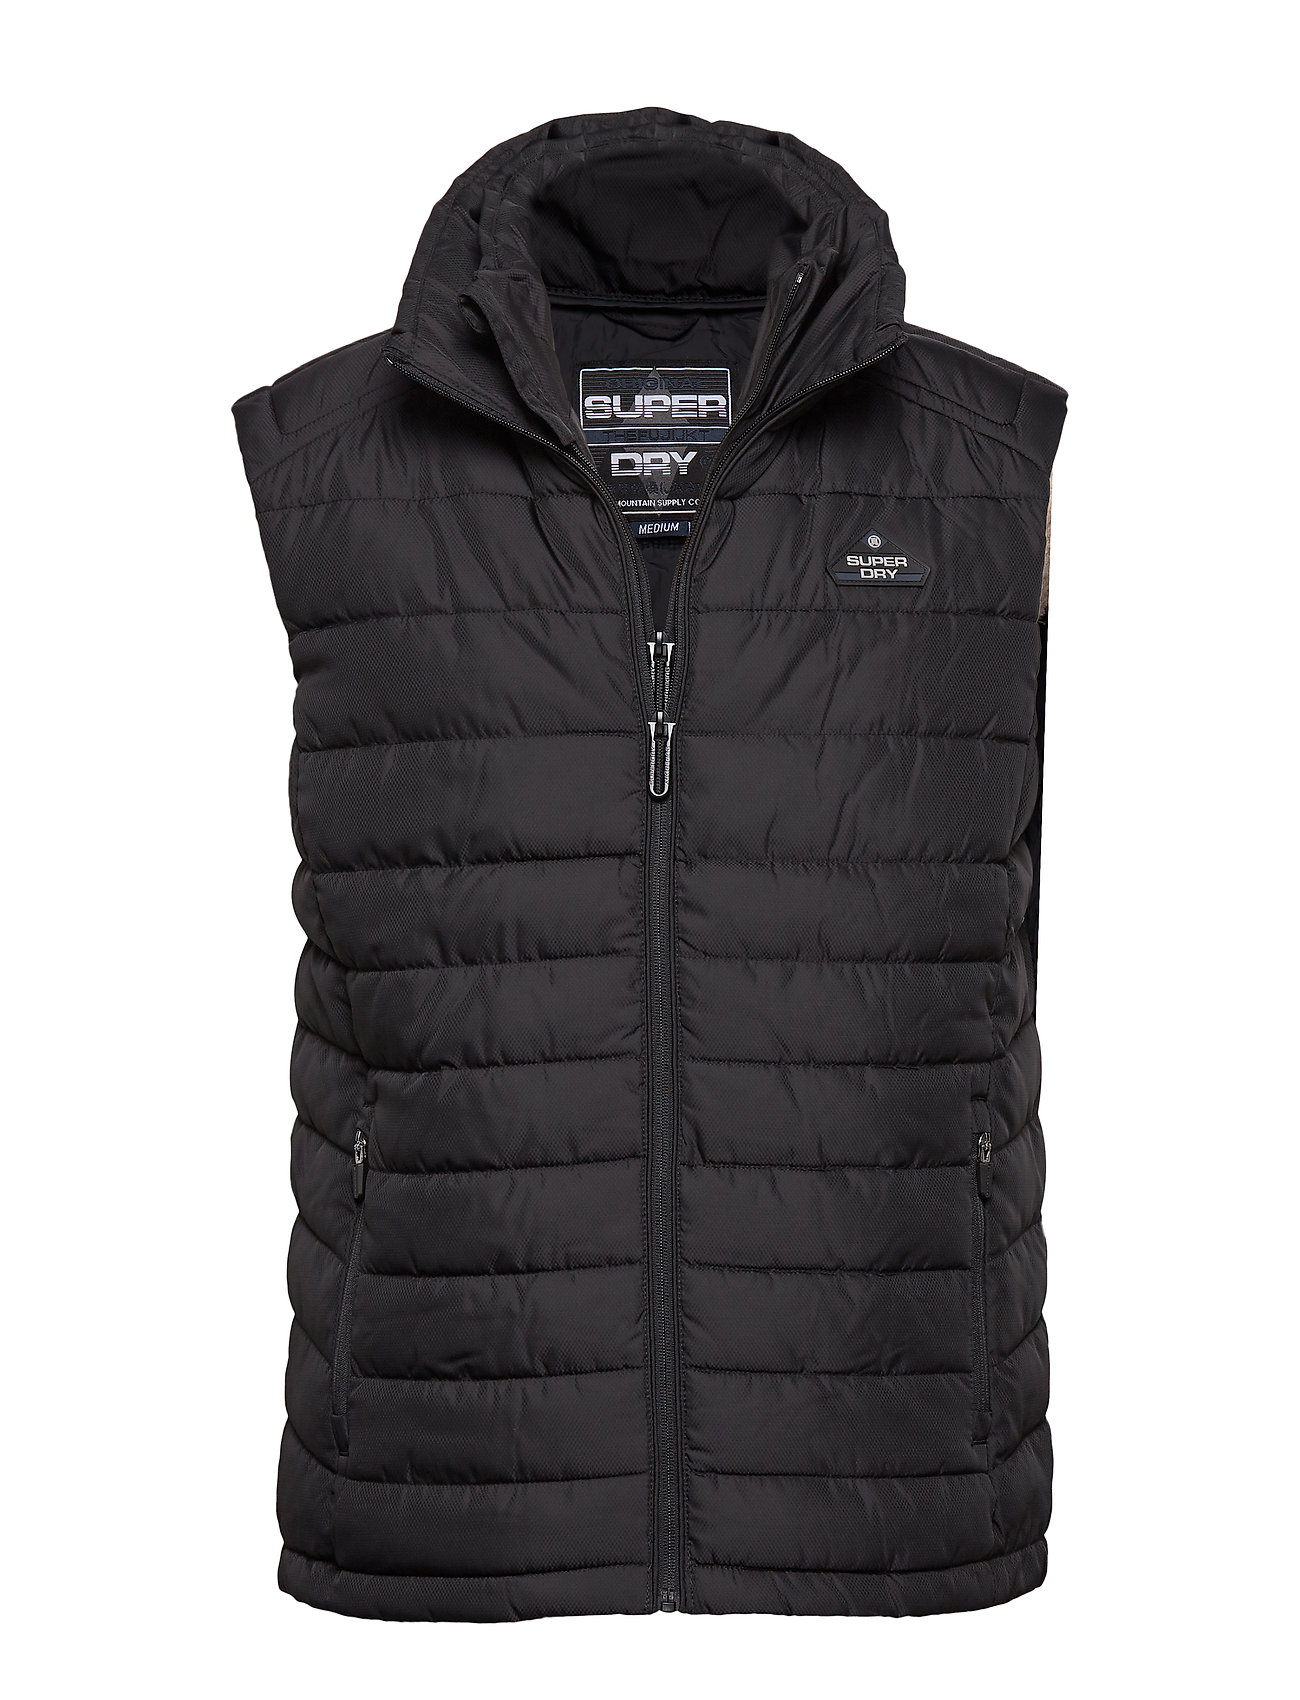 Superdry DOUBLE ZIP FUJI GILET - JET BLACK